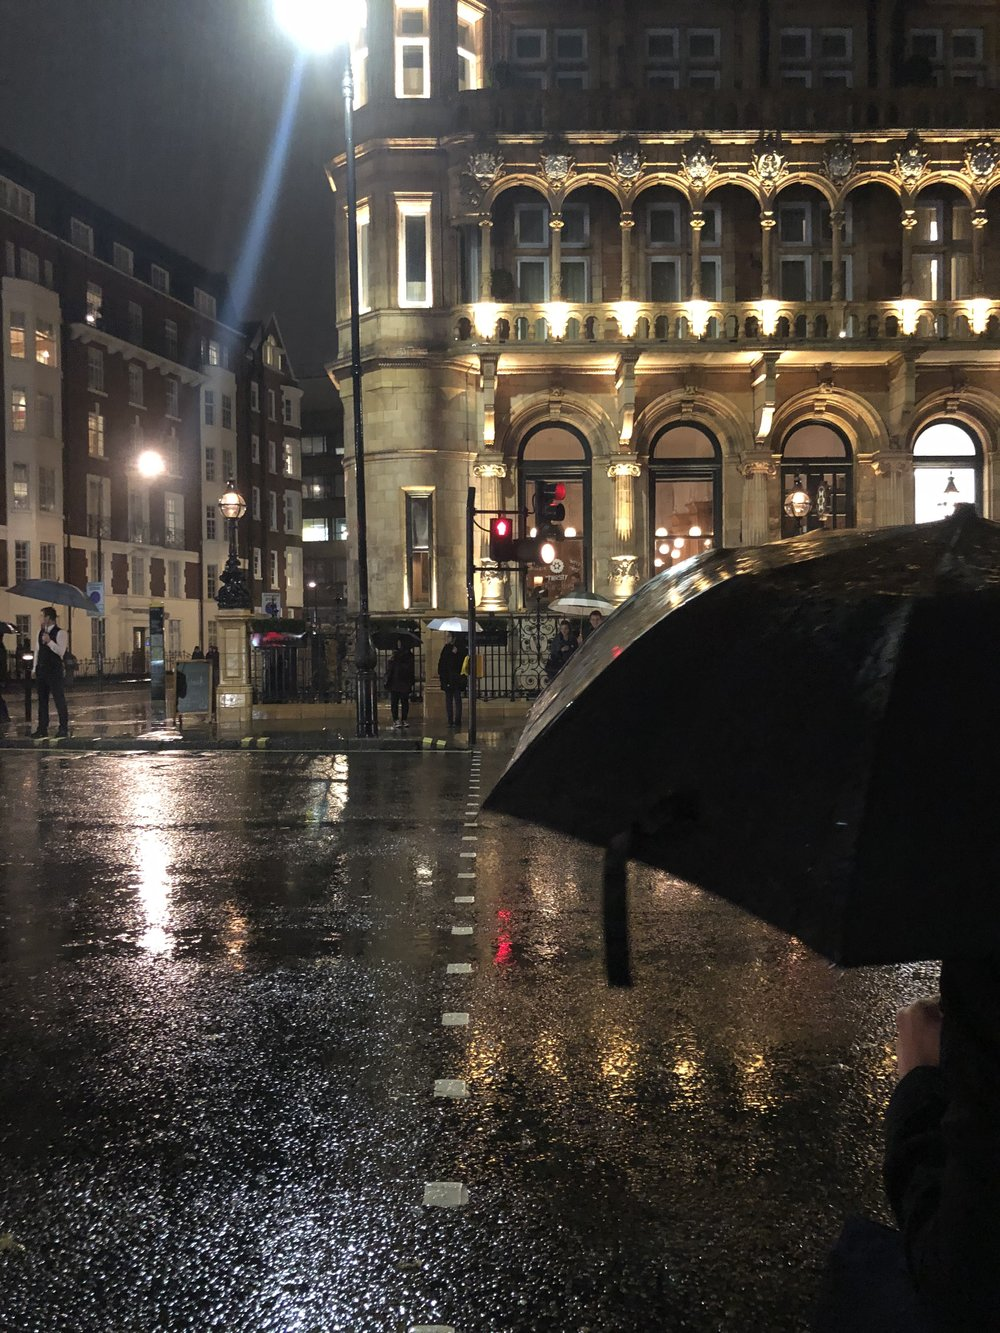 Rainy evenings in London aren't as common as you'd think!